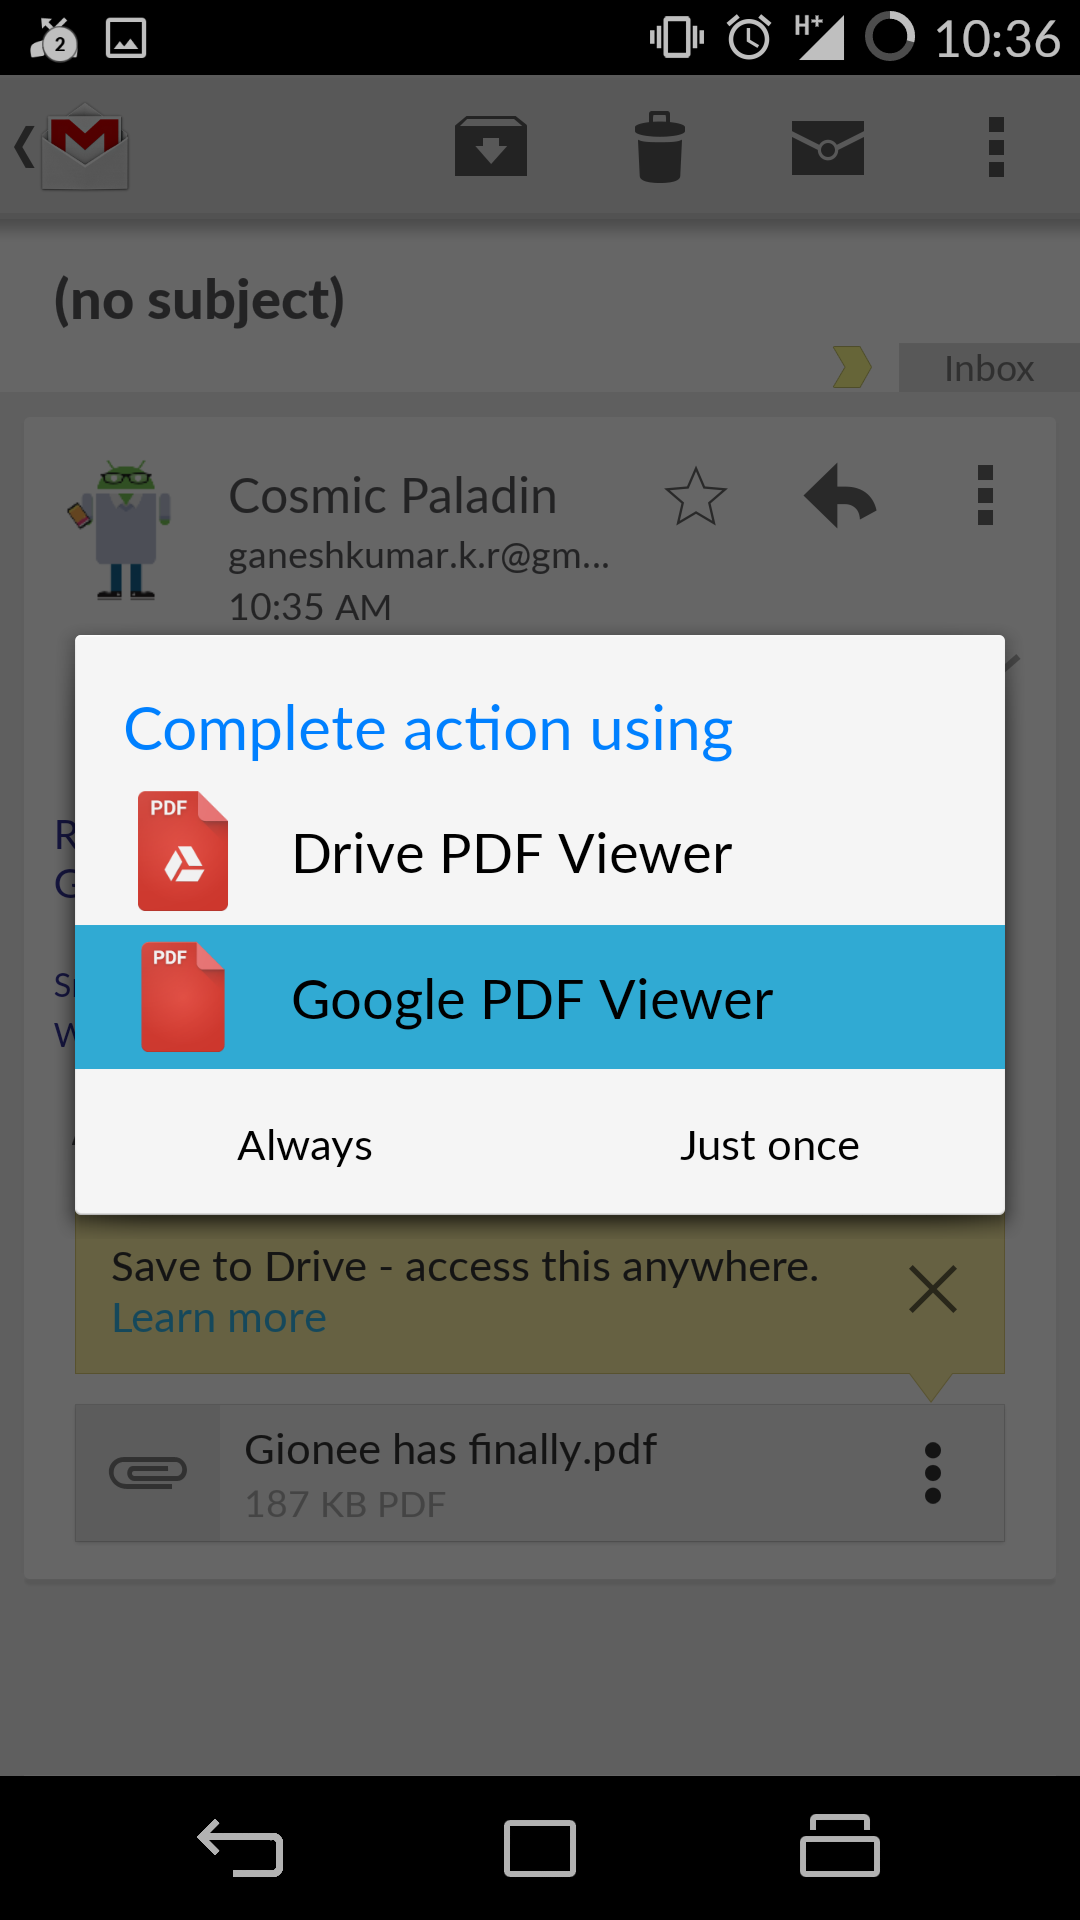 Google PDF Viewer for Android – Out now on Play Store